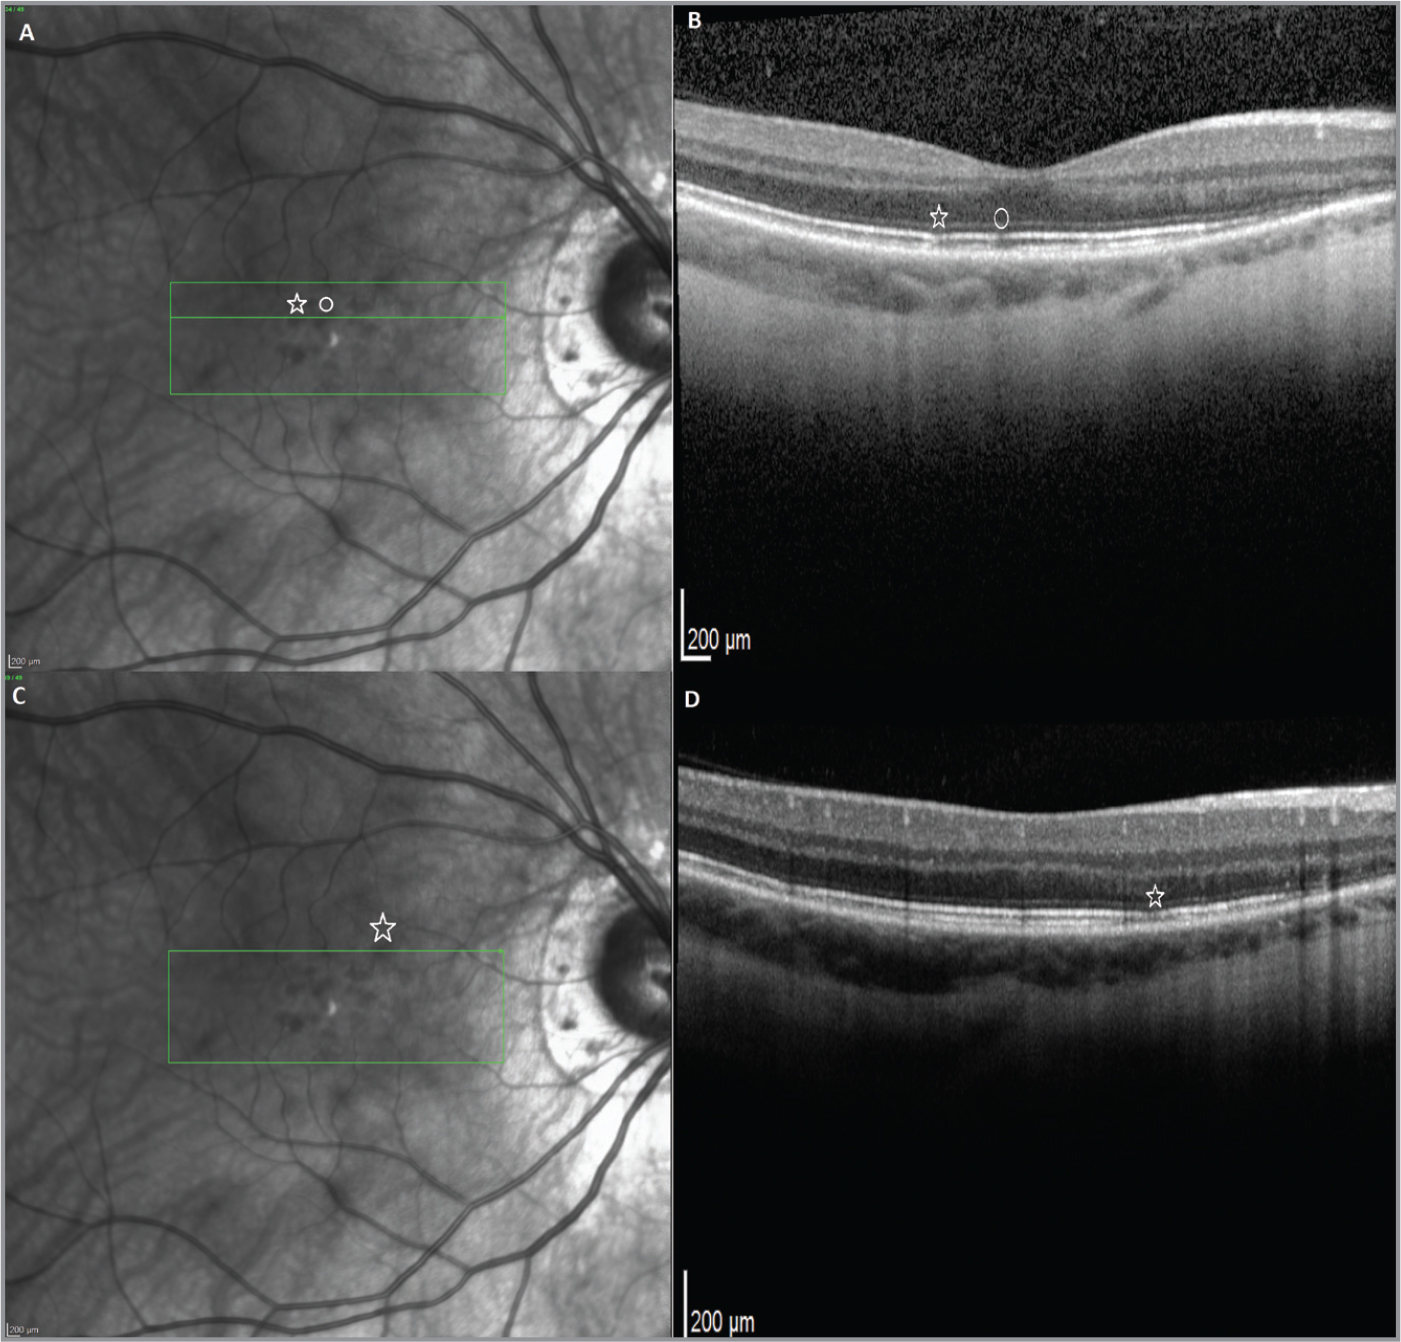 Two years later, infrared radiance (IR) in the right eye (OD) revealed multiple oval-shaped focal patches of decreased reflectance scattered circumferentially in the paramacular region (A, C). These lesions were more numerous in the superior macula and were in different location from areas of decreased reflectance during her initial presentation (Figure 2). Optical coherence tomography (B, D) showed normal foveal contour and inner retinal layers. There were multiple 50 μm to 100 μm focal areas of disruption of the outer segment / retinal pigment epithelium interface with overlying inner segment / outer segment junction attenuation, corresponding to areas of reduced reflectance in the IR image (star and circle). These lesions were located in areas that were affected during her first presentation.